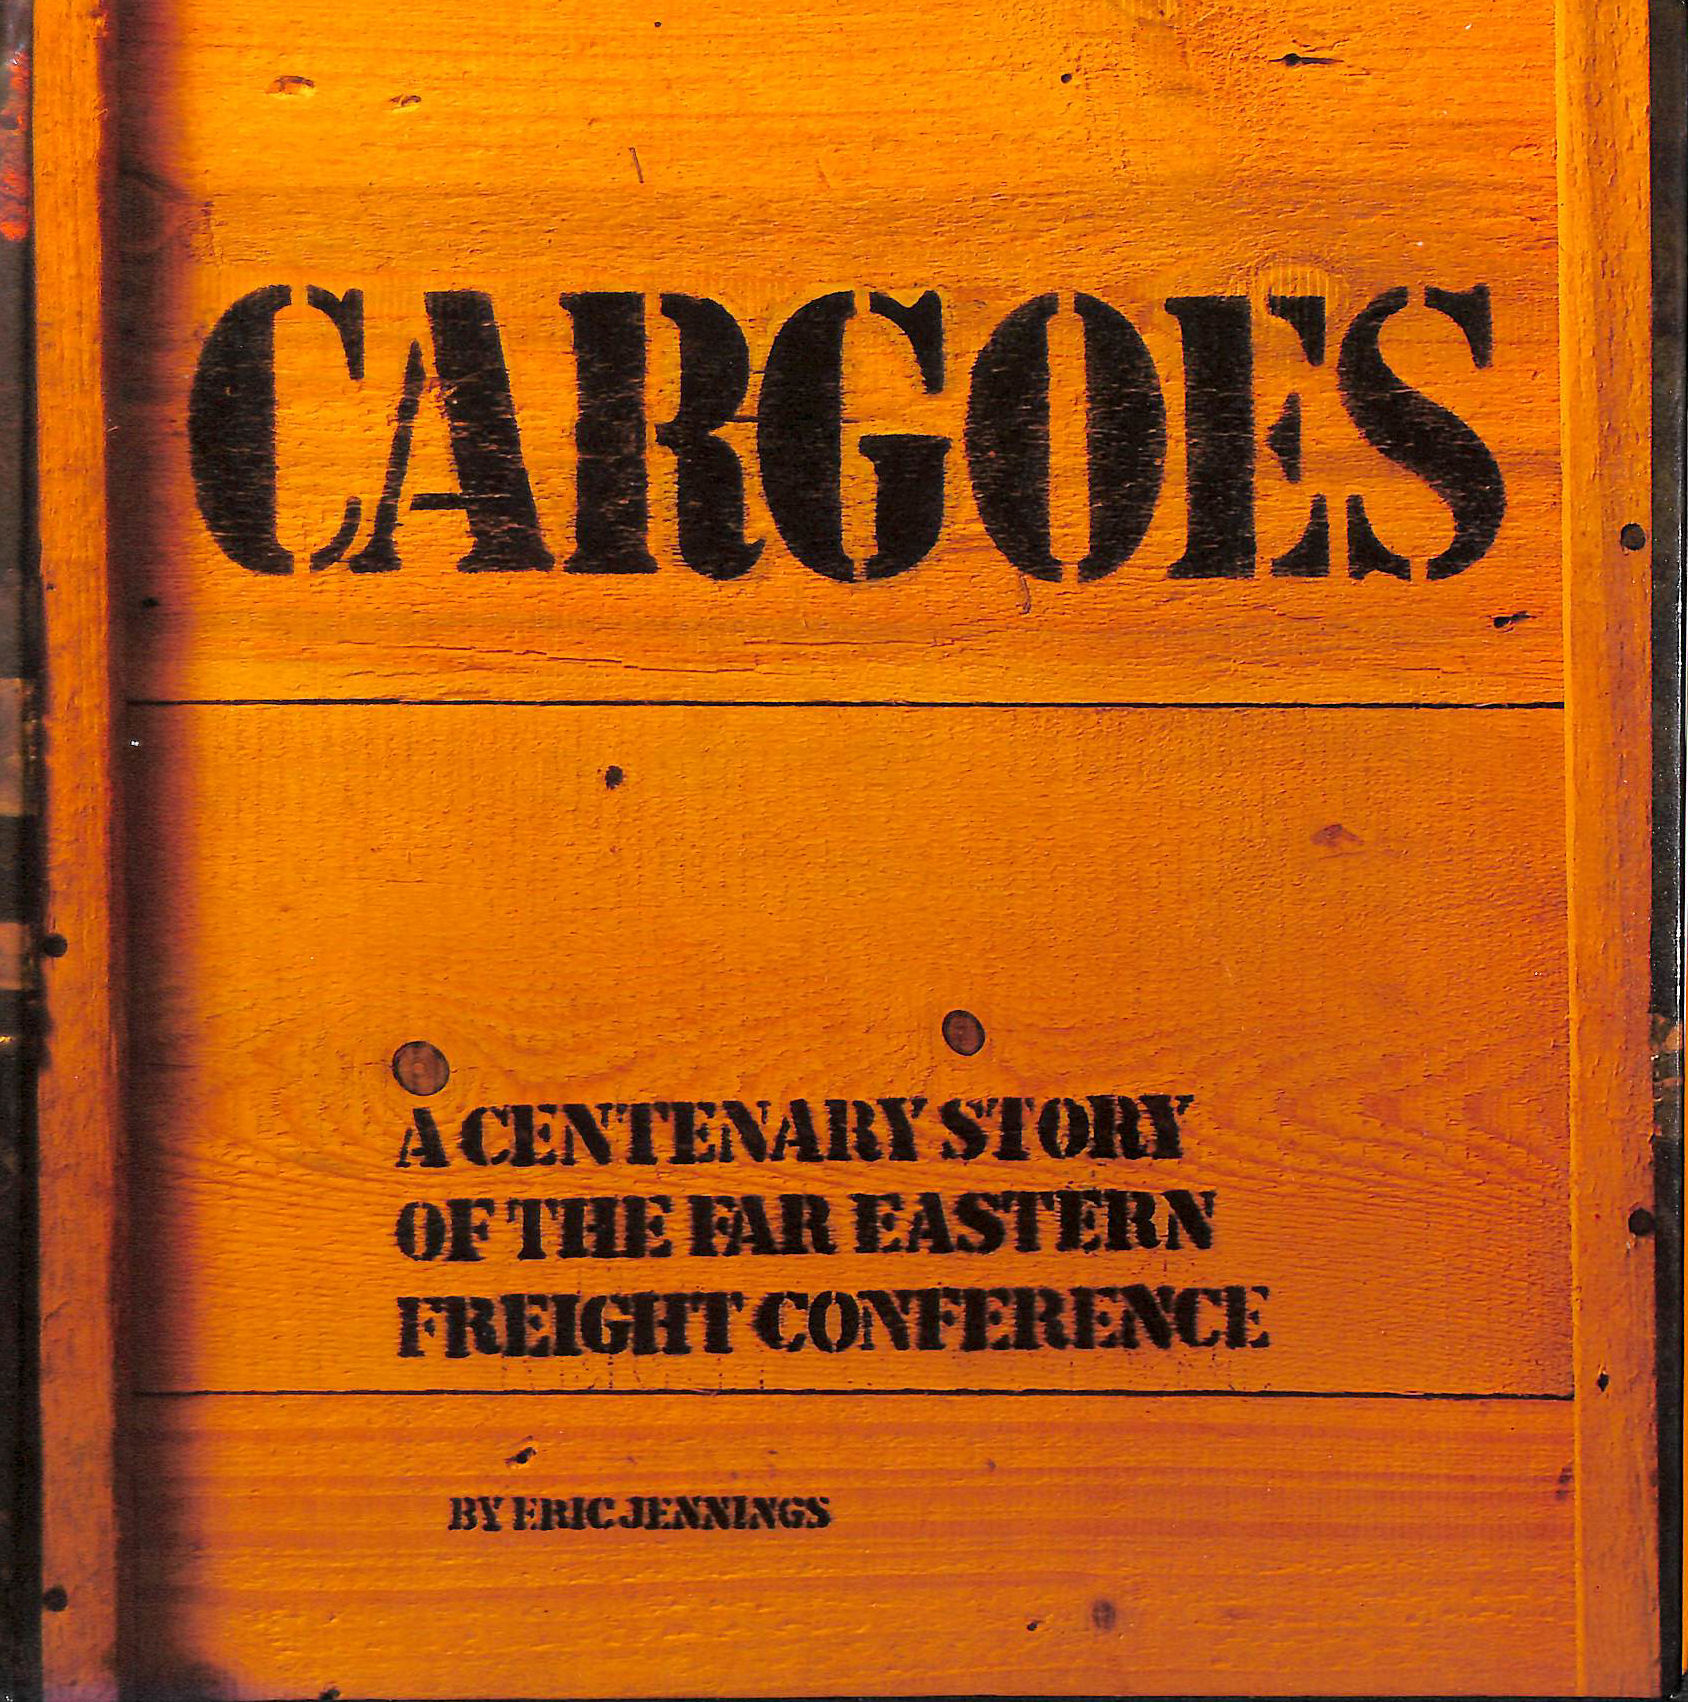 Image for Cargoes. A Centenary Story Of The Far Eastern Freight Conference